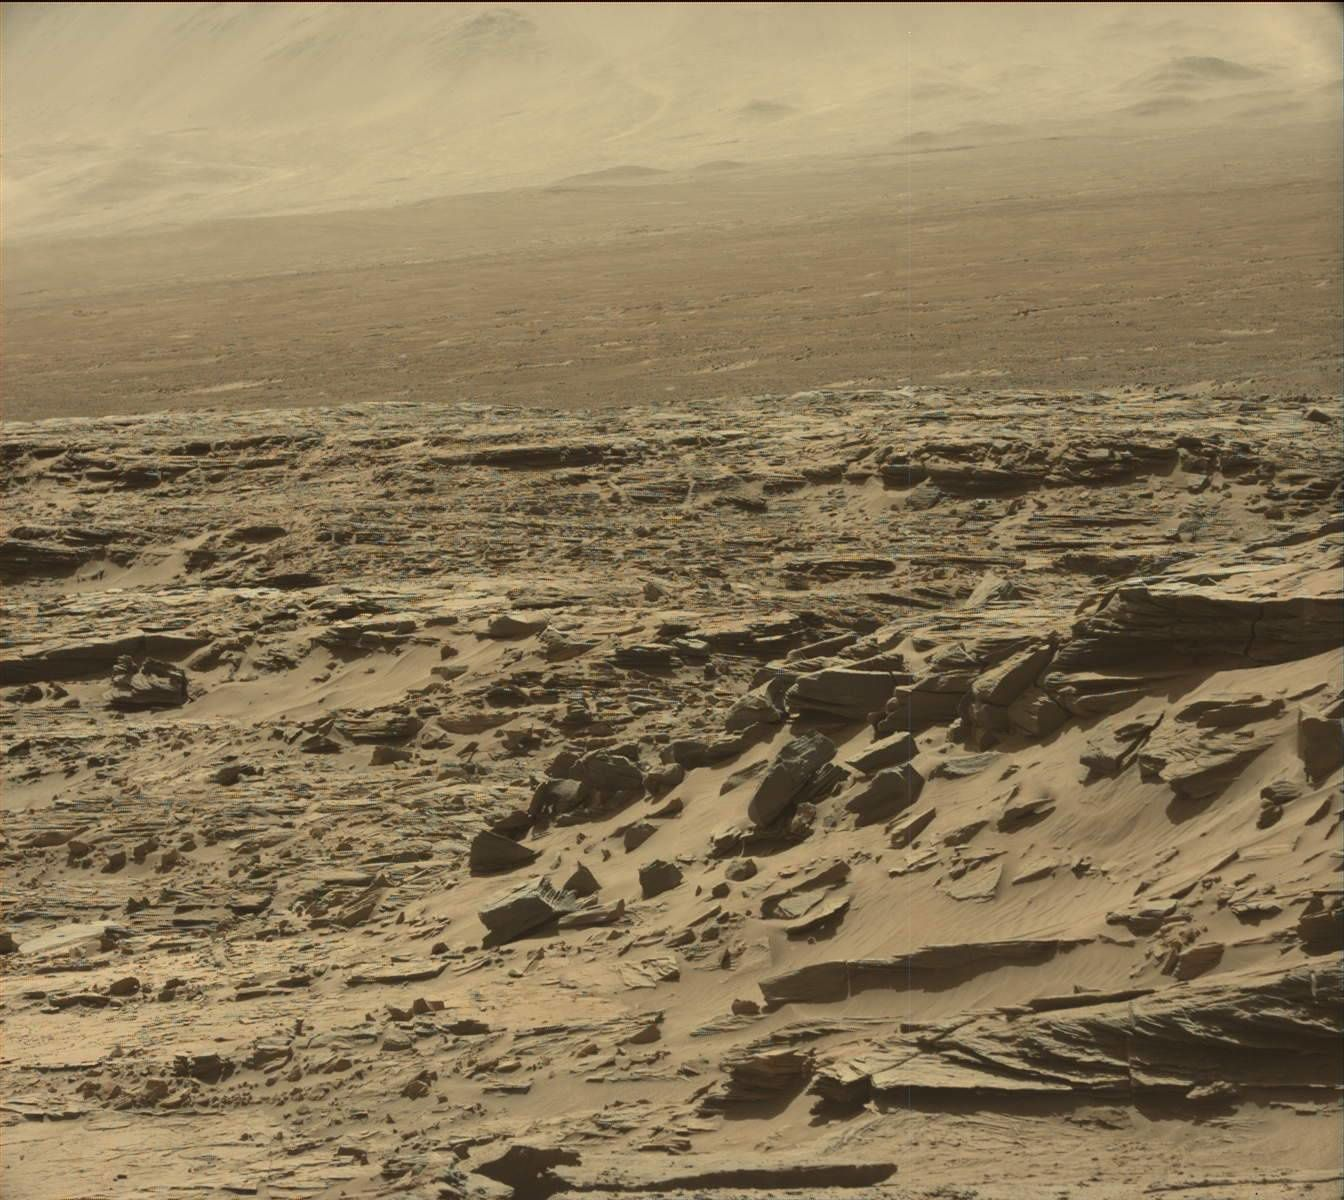 Photo originale. Crédit photo NASA. Curiosity SOL 1290. Le 23 mars 2016.